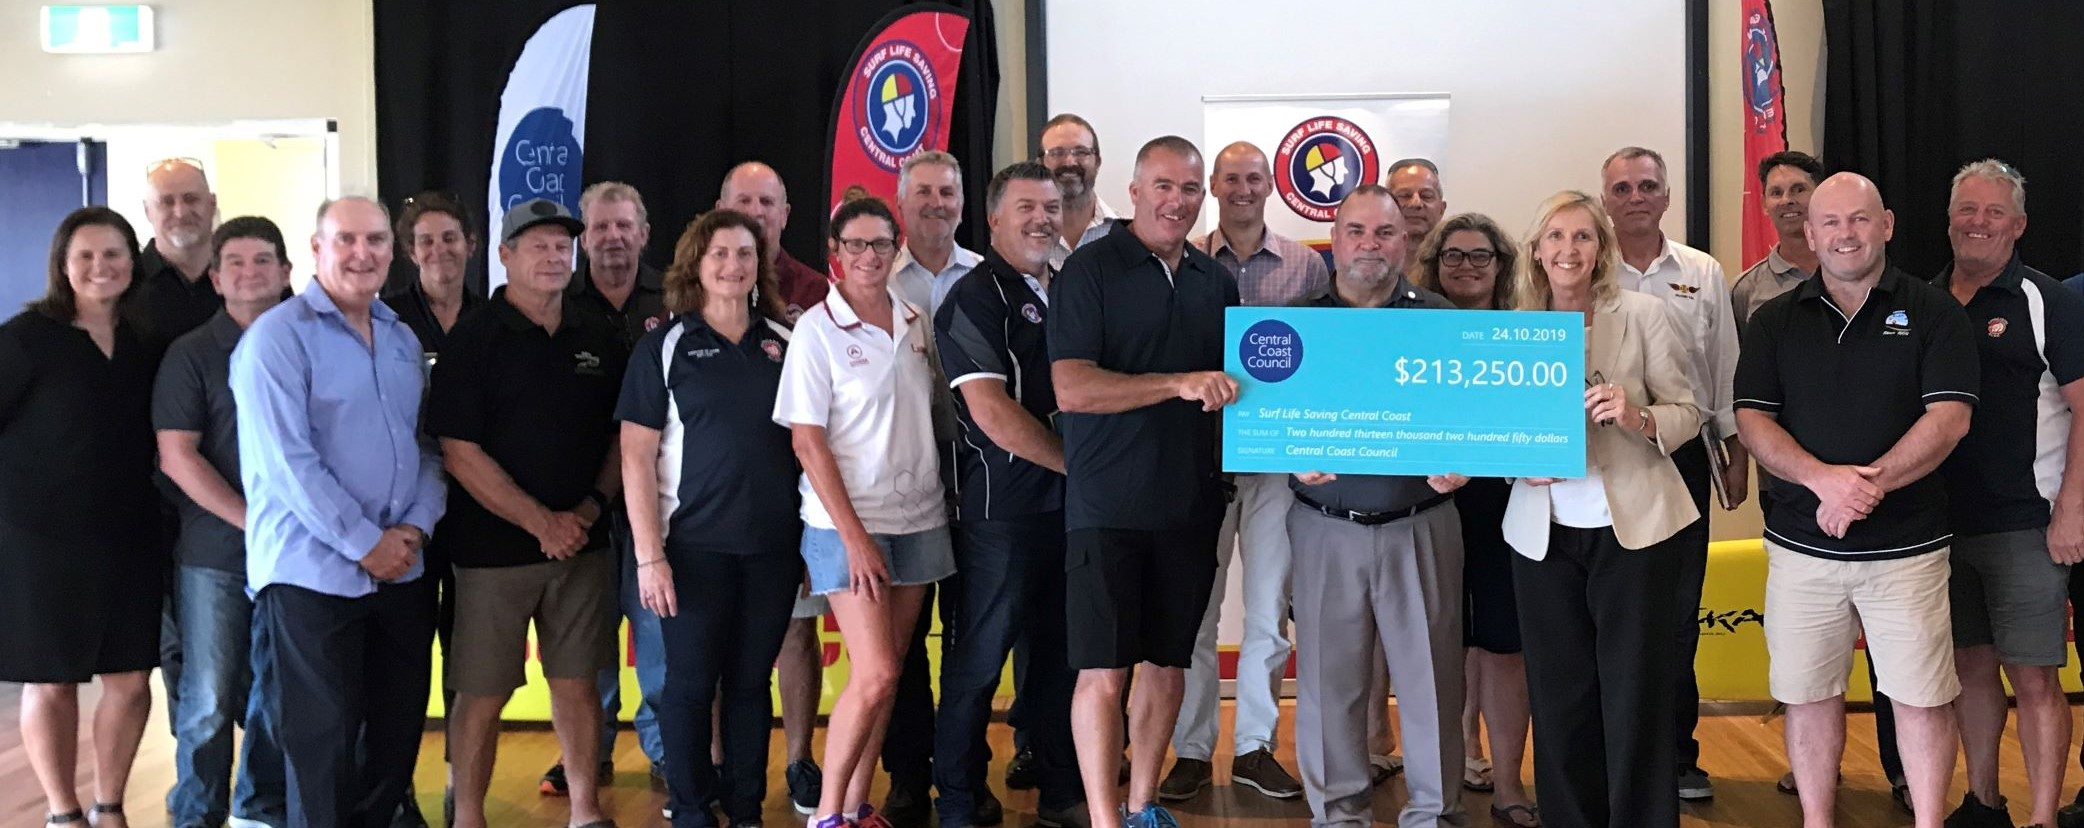 SLSC_Cheque_presentation_Oct_2019_cropped